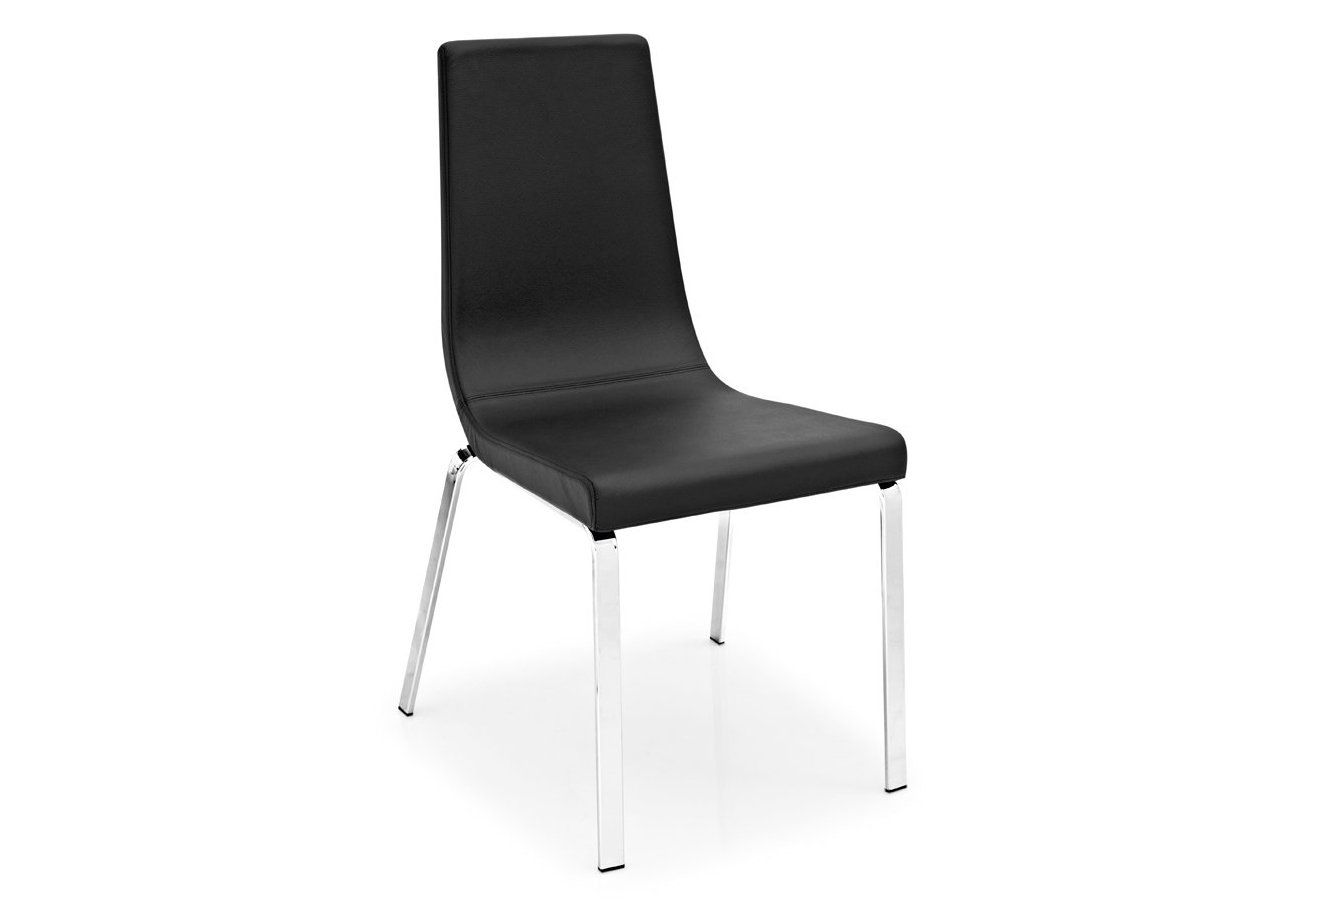 CONNUBIA BY CALLIGARIS connubia by calligaris Stühle  »CB/1095-LH Cruiser Leather«  (2 Stck.)